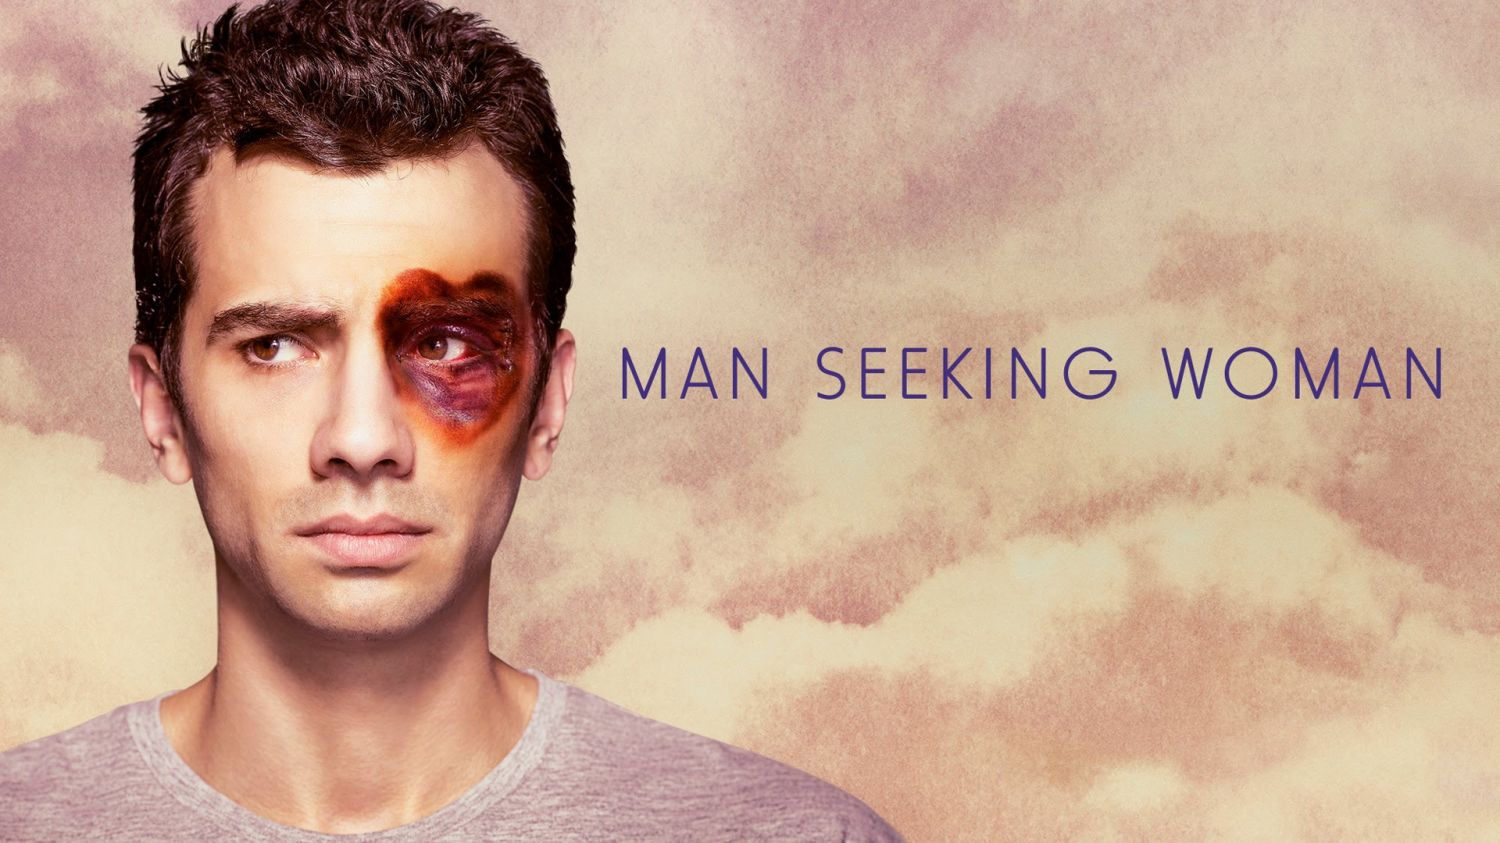 Man seeking women hitler